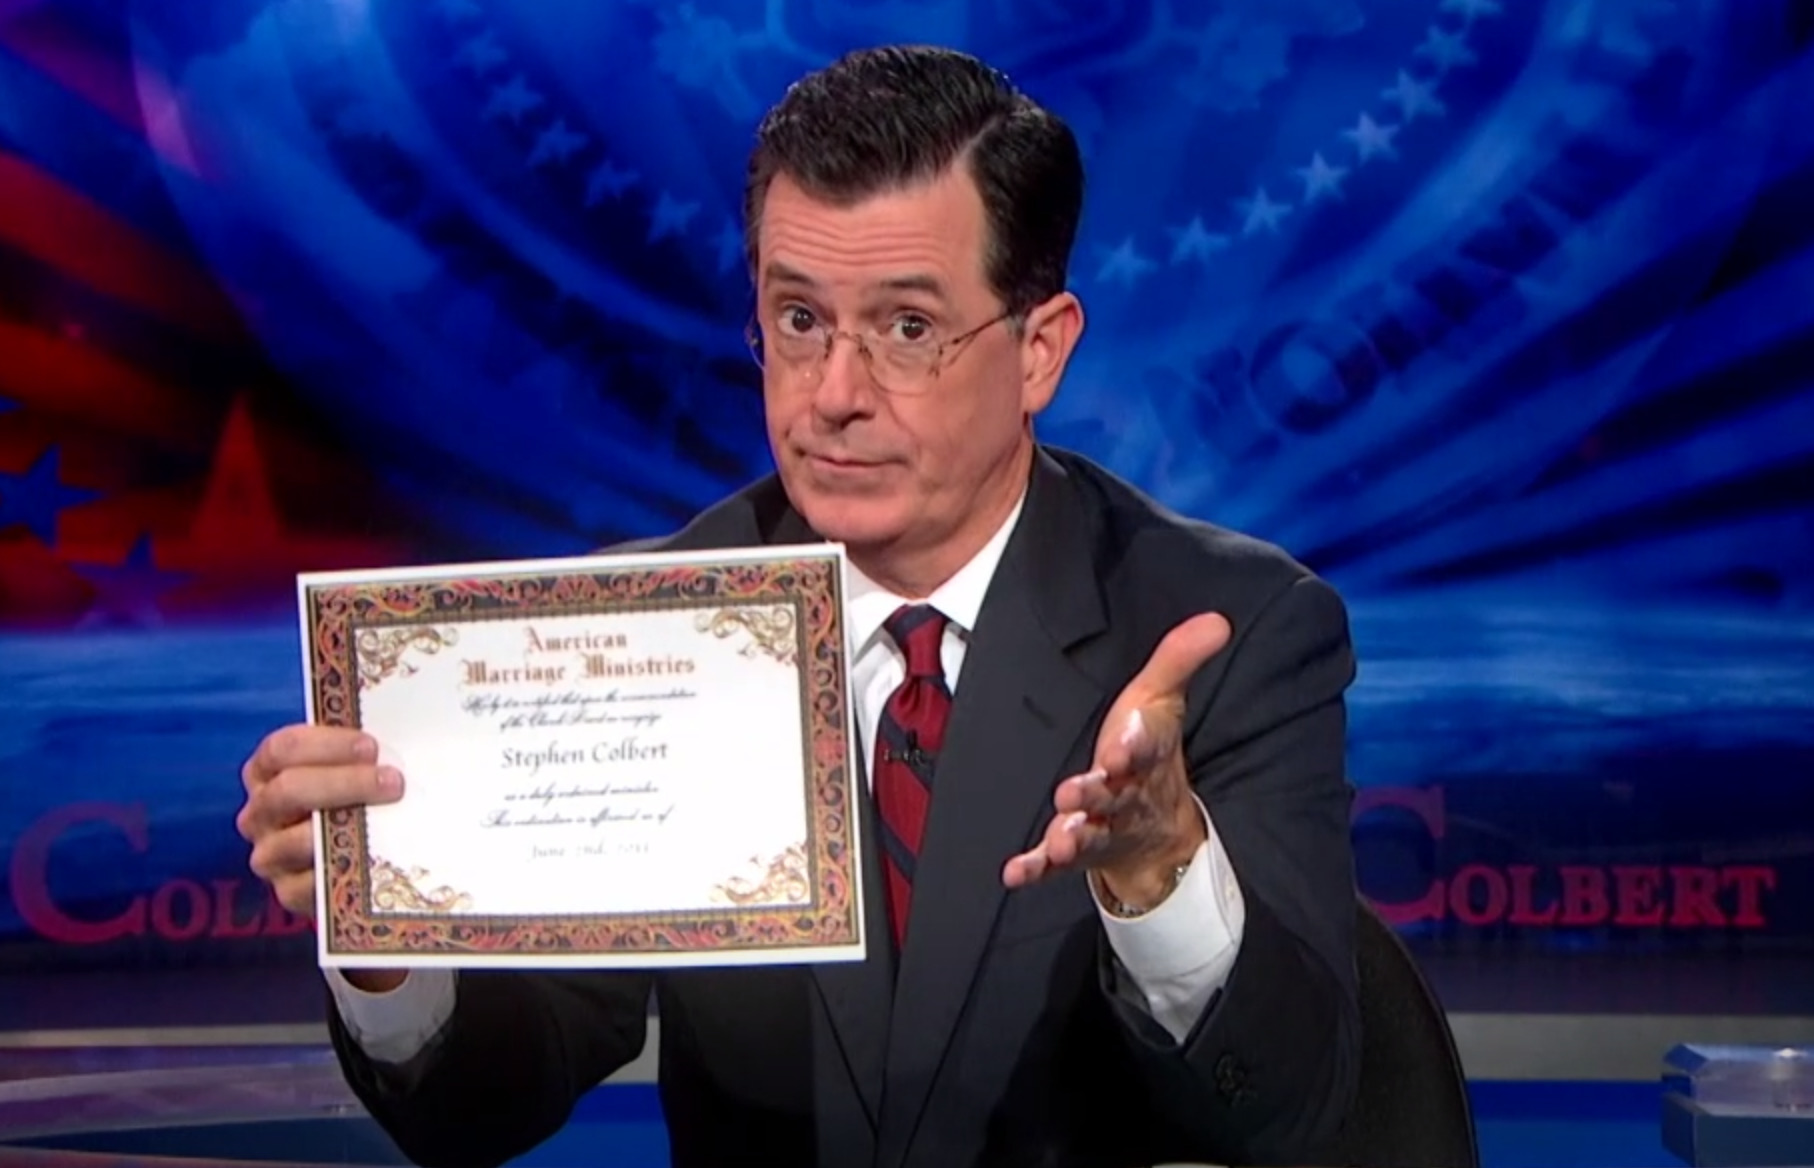 Our most famous minister yet, Stephen Colbert